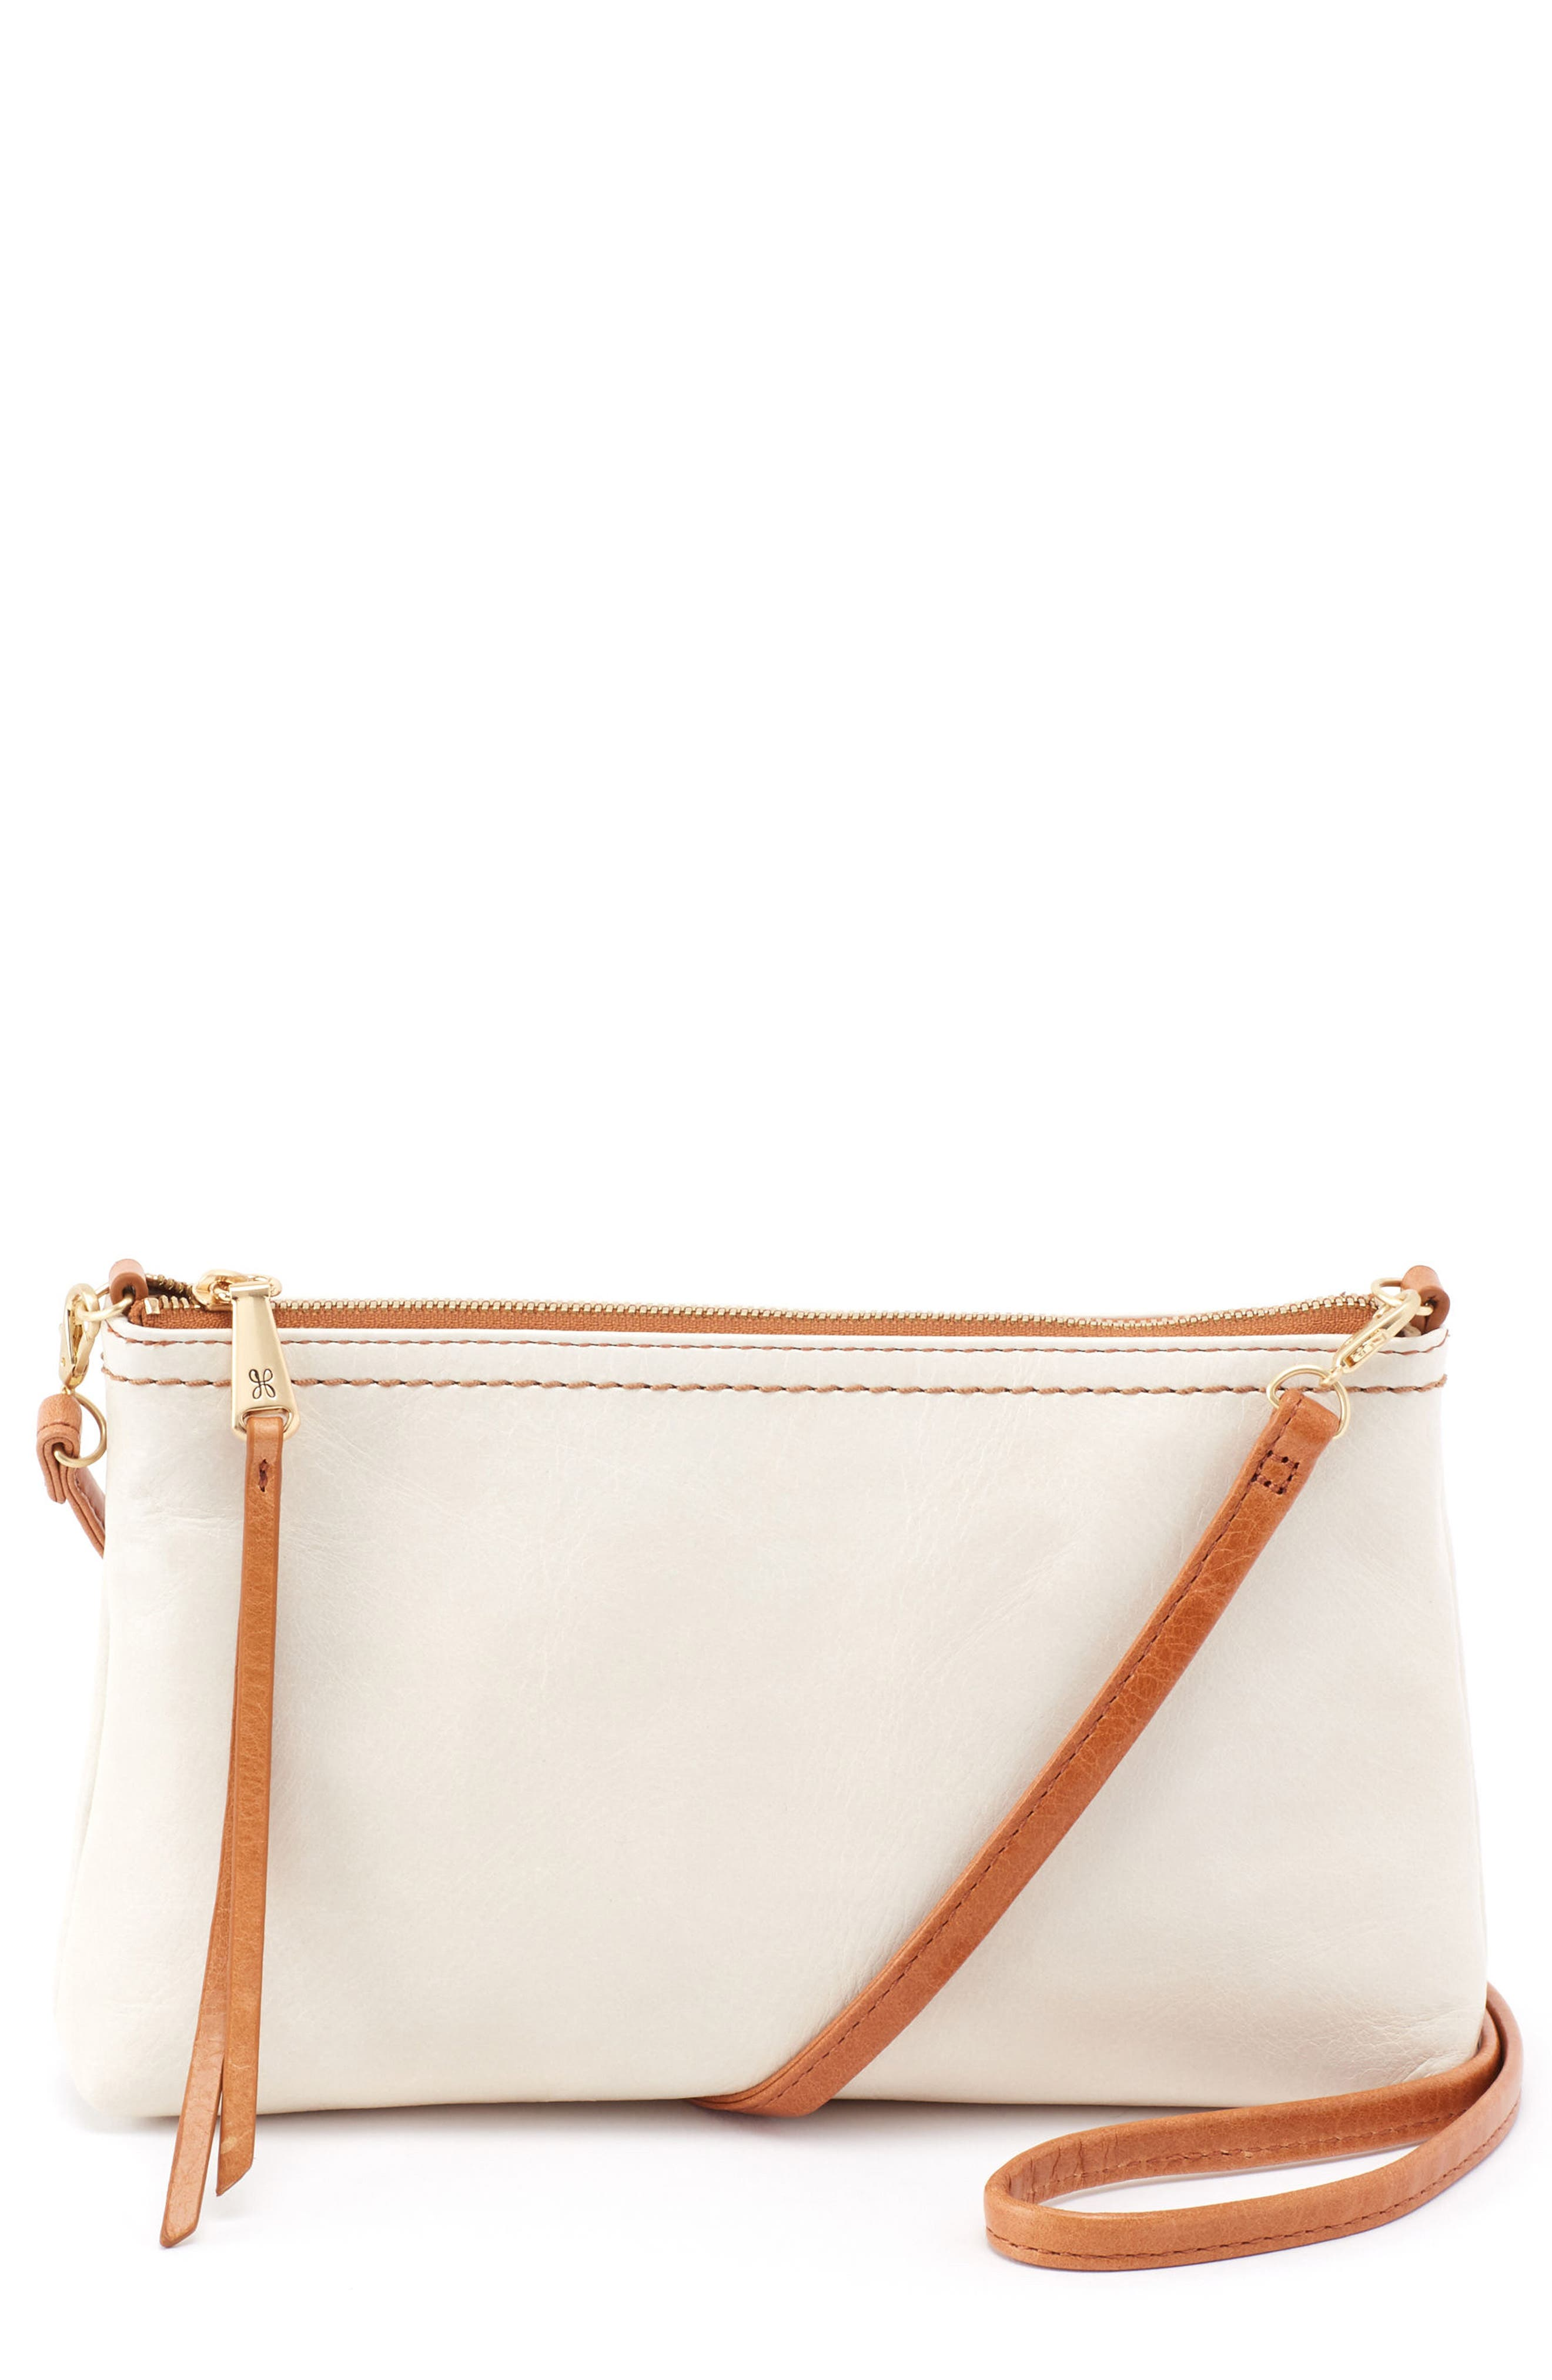 'Darcy' Leather Crossbody Bag,                         Main,                         color,